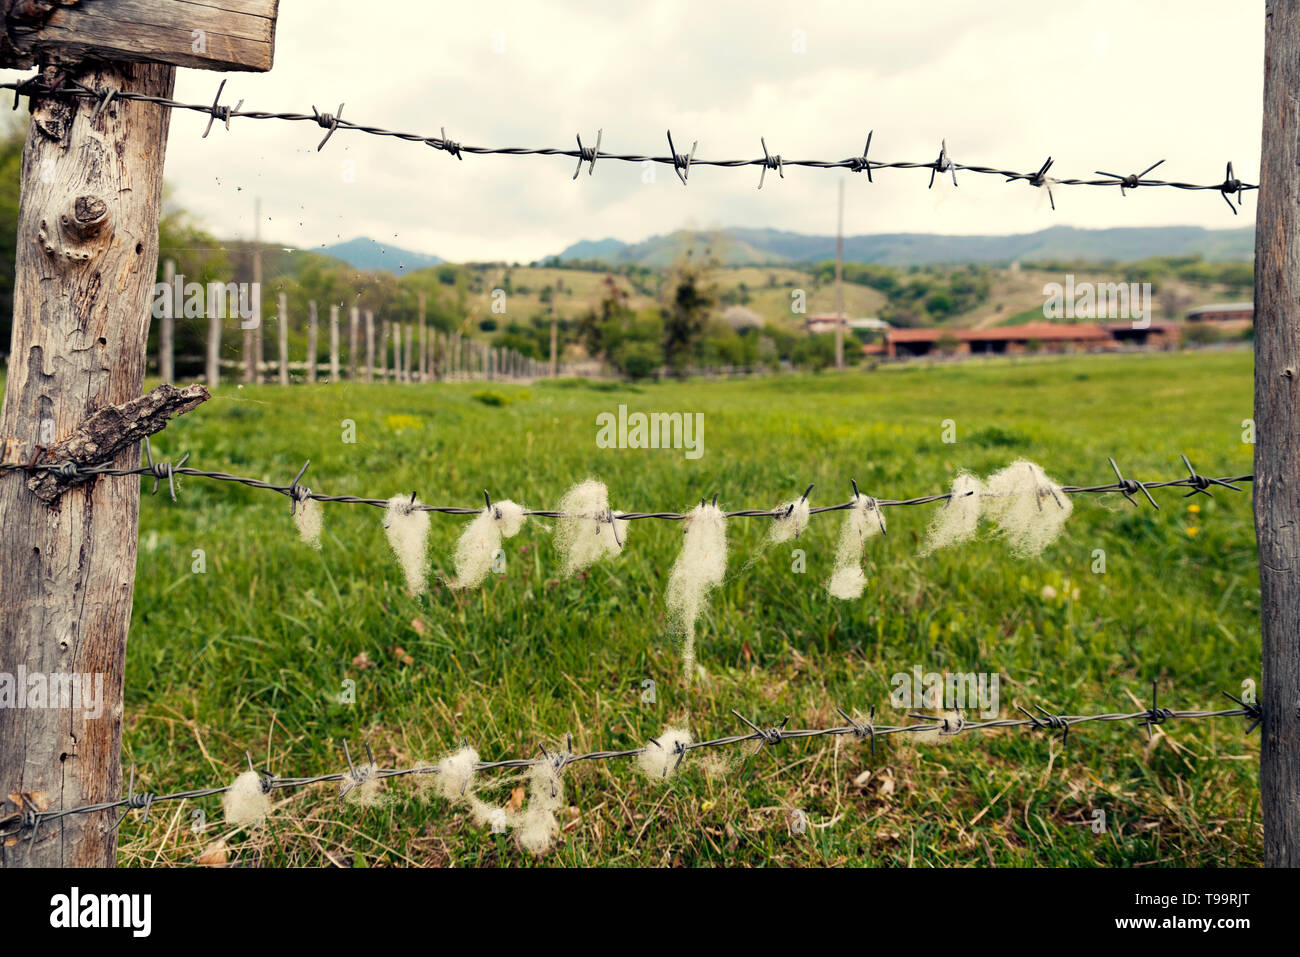 Animal farm in the country  Wooden fence with barbed wire with sheep wool on it Selective focus Stock Photo